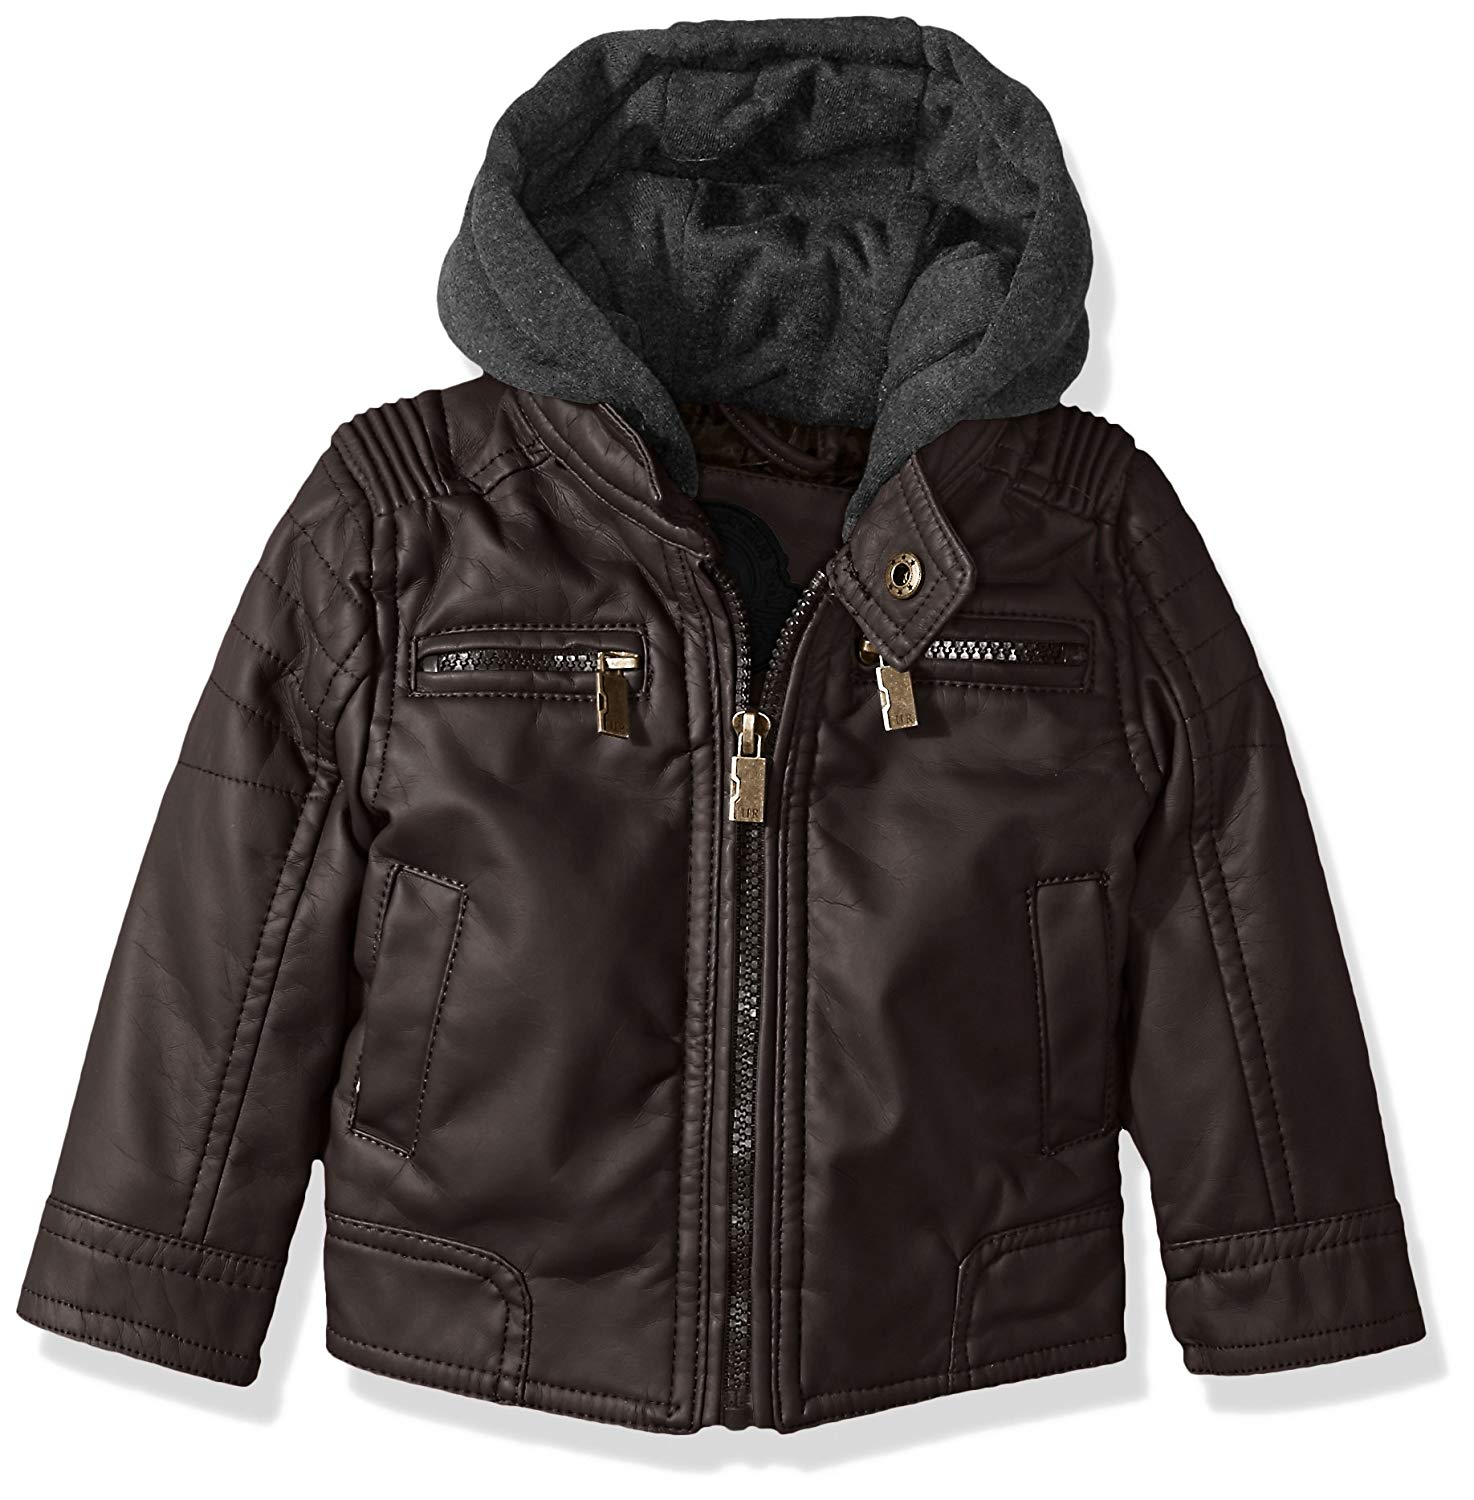 90ec7327f9e8 Buy Urban Republic Baby Boys Faux Leather Jacket Quilted Sleeves in ...